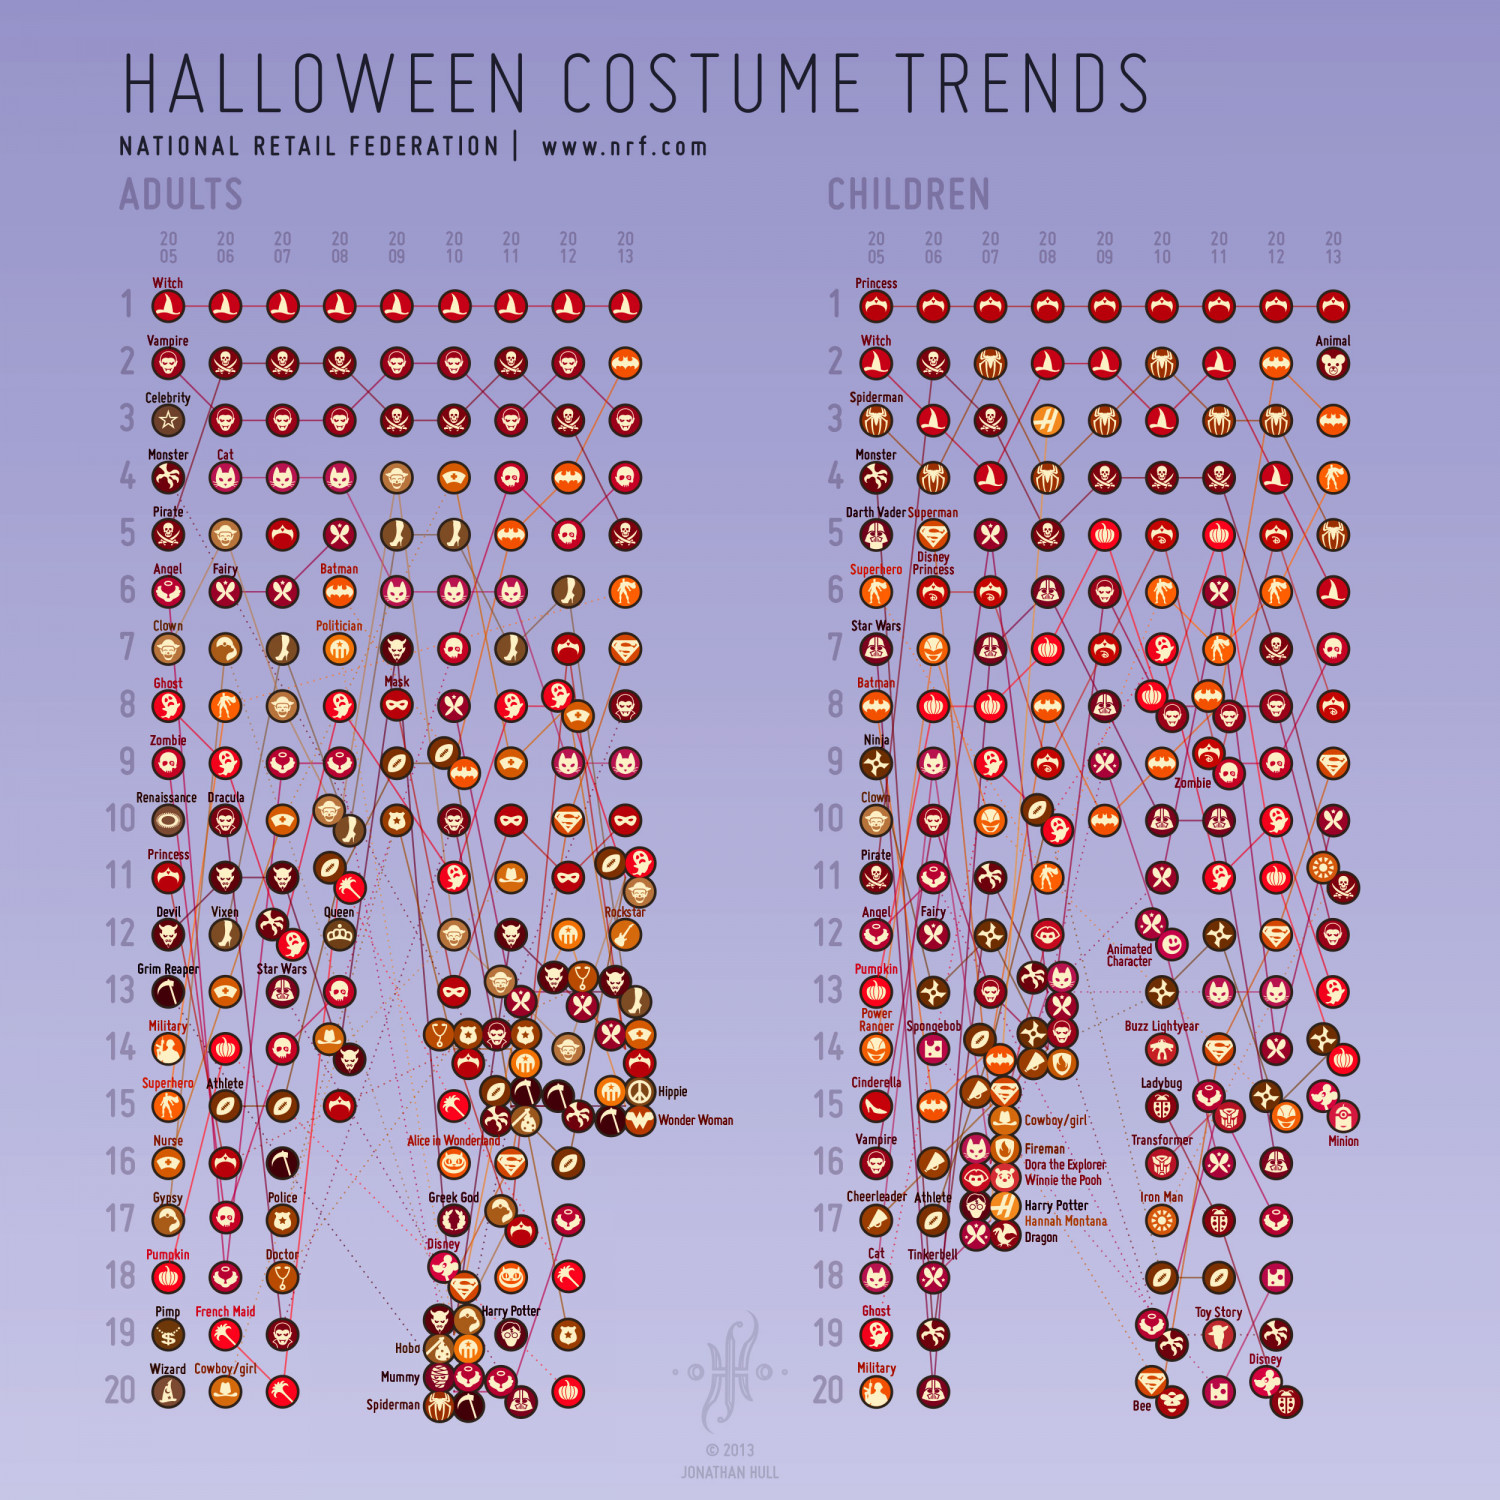 Halloween Costume Trends Infographic